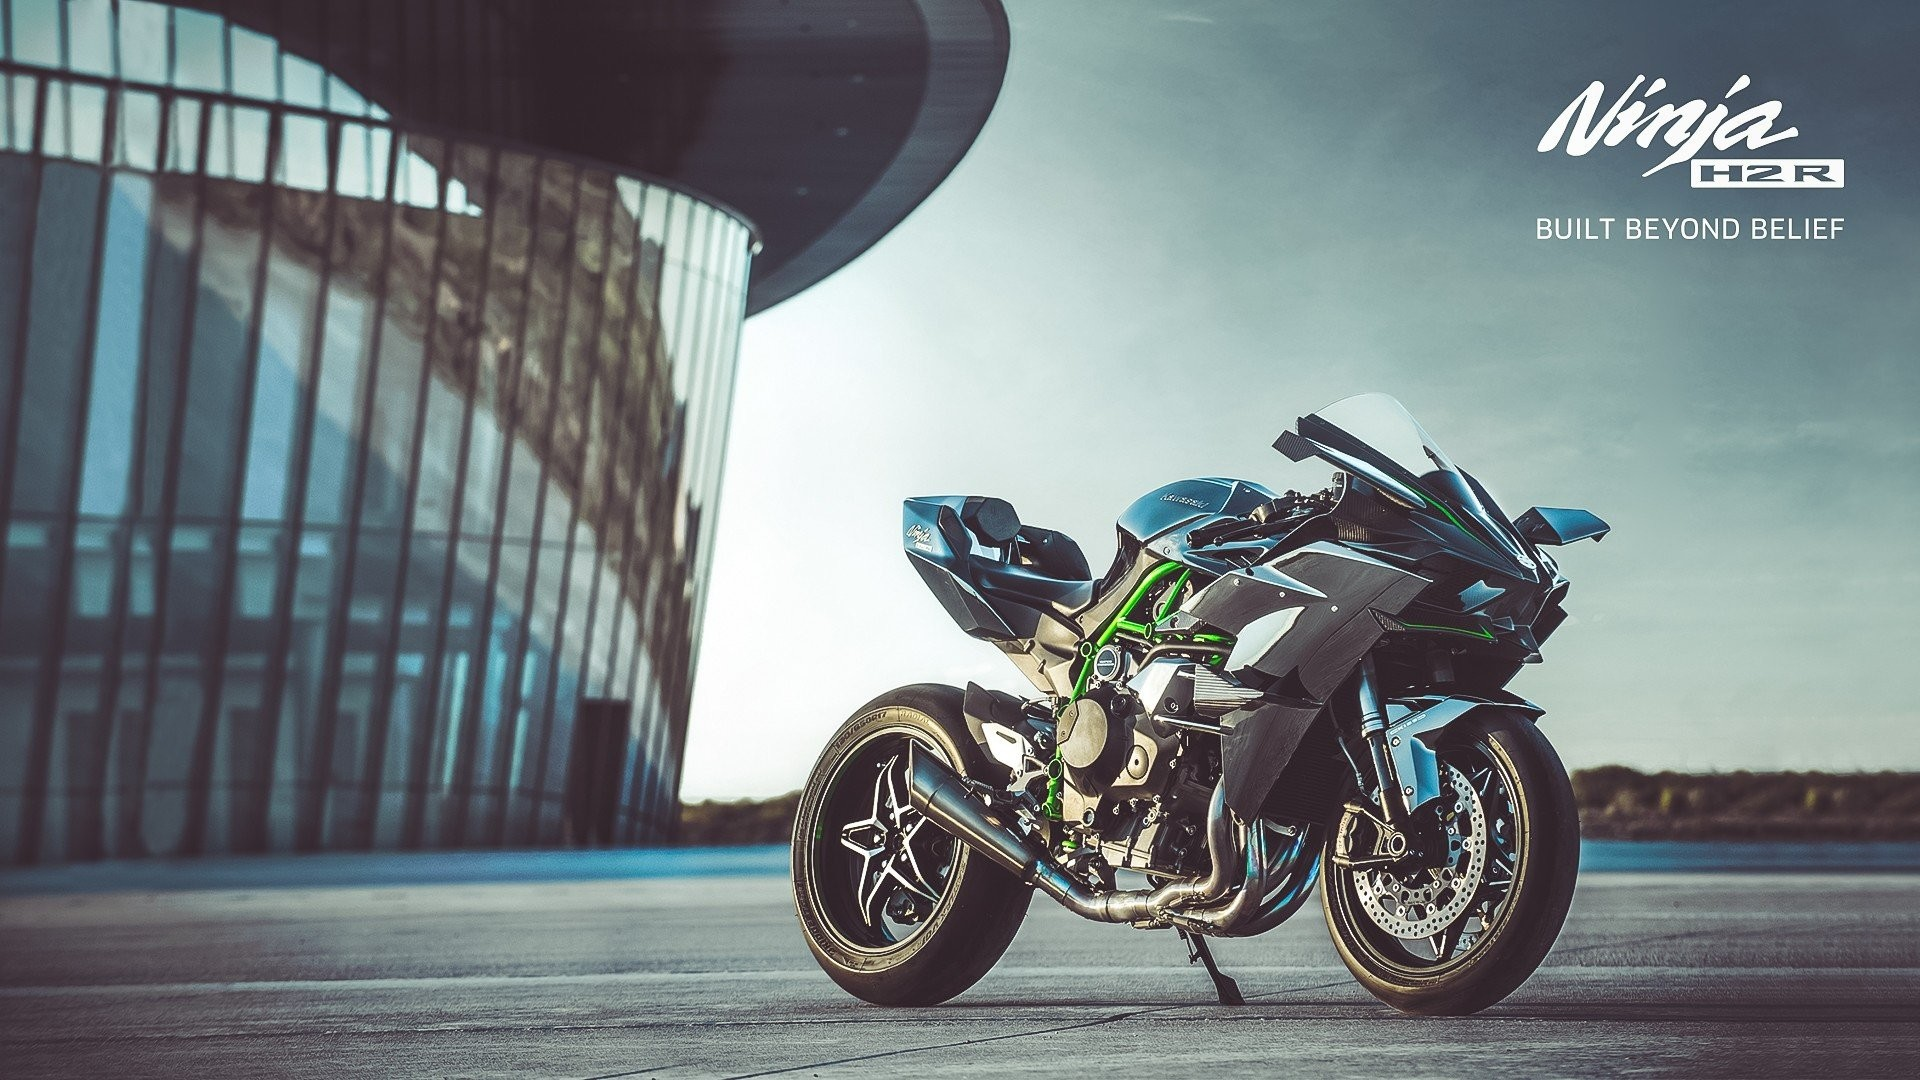 1920x1080 Kawasaki Ninja H2R Wallpapers HD Desktop And Mobile Backgrounds